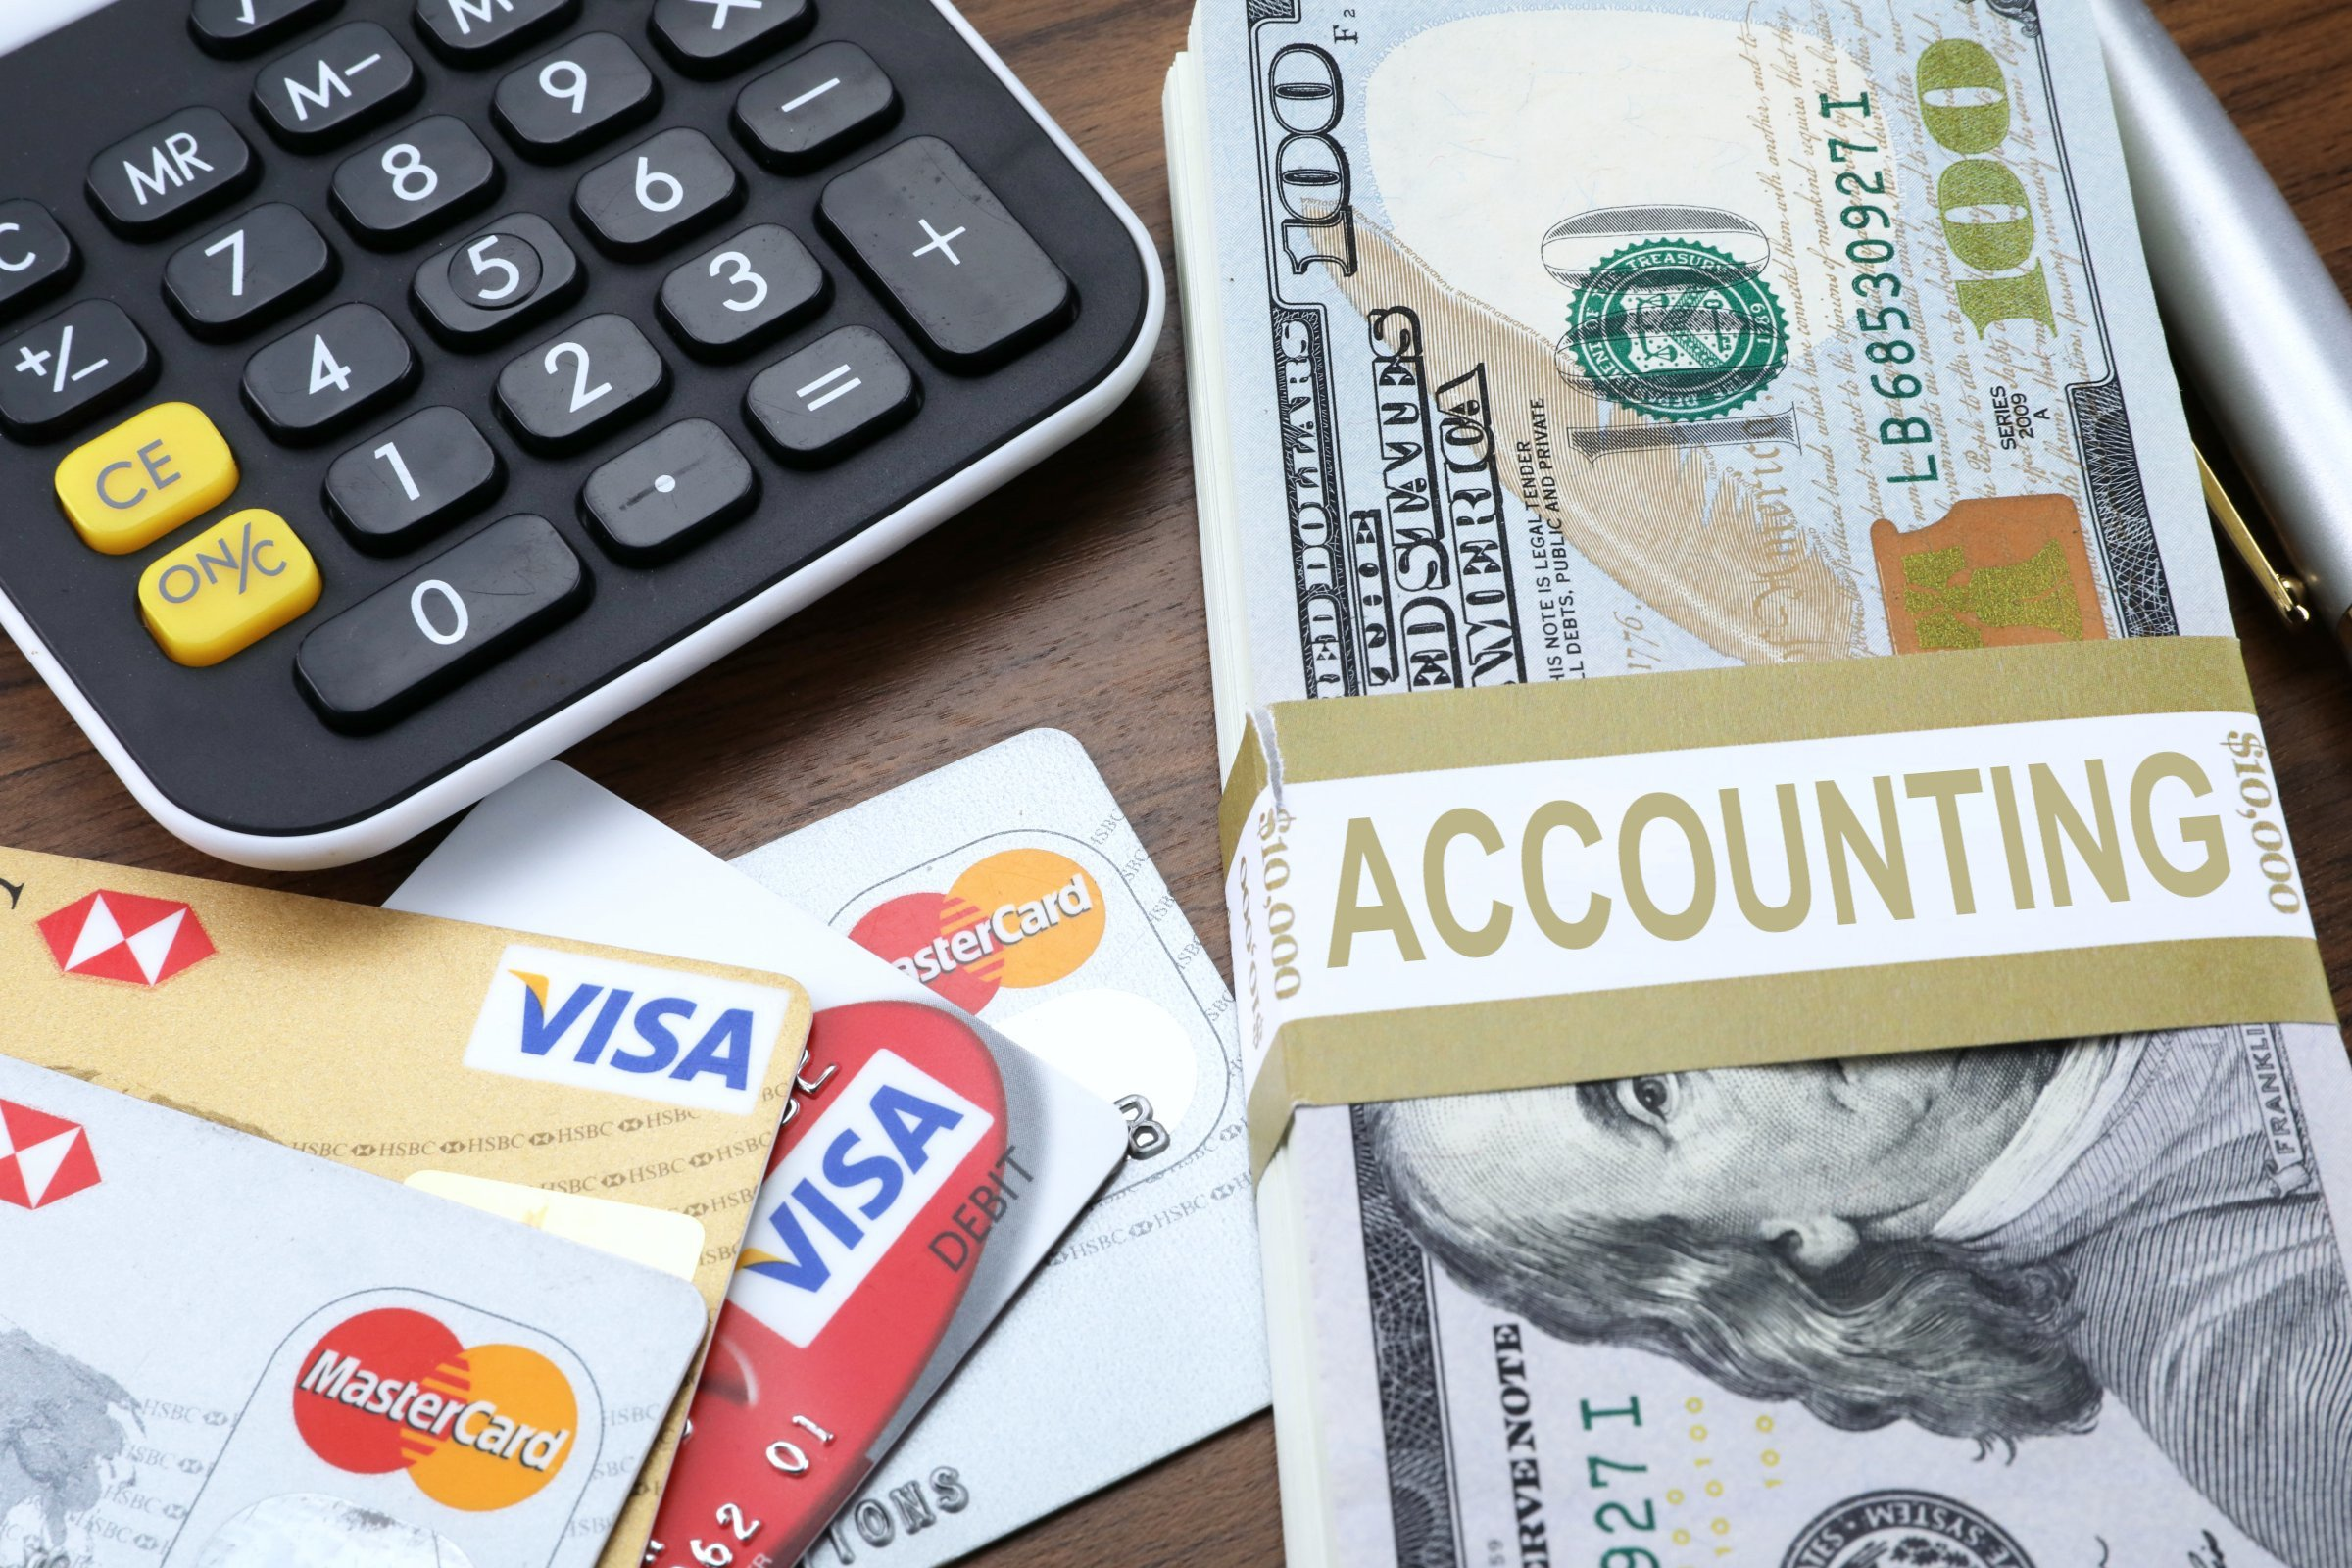 Money, credit cards and a calculator; inclusive program students